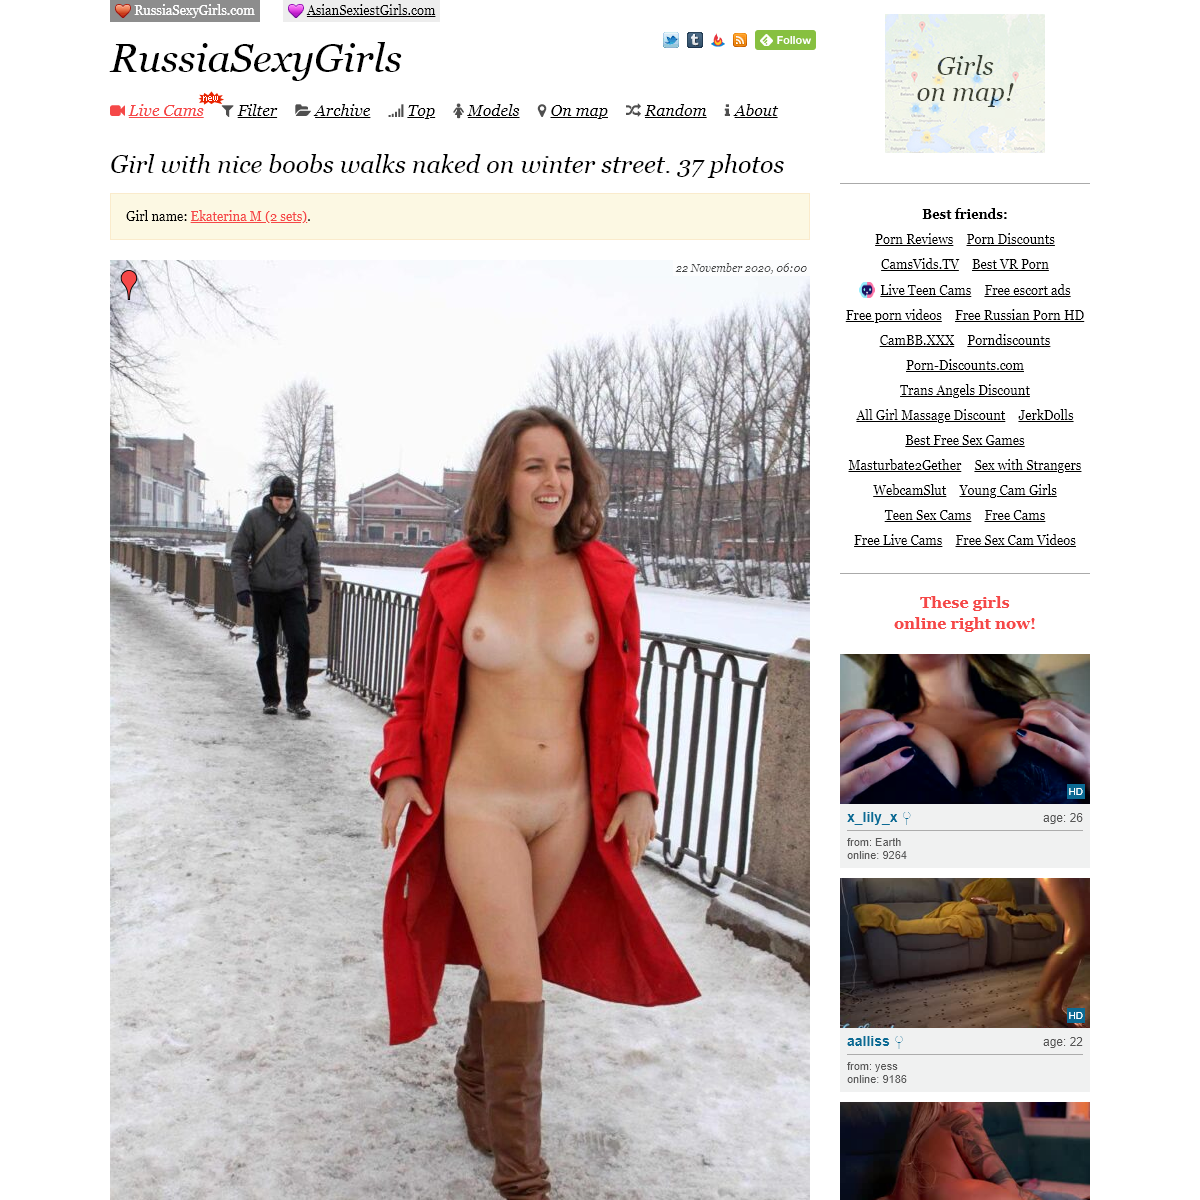 A complete backup of www.russiasexygirls.com